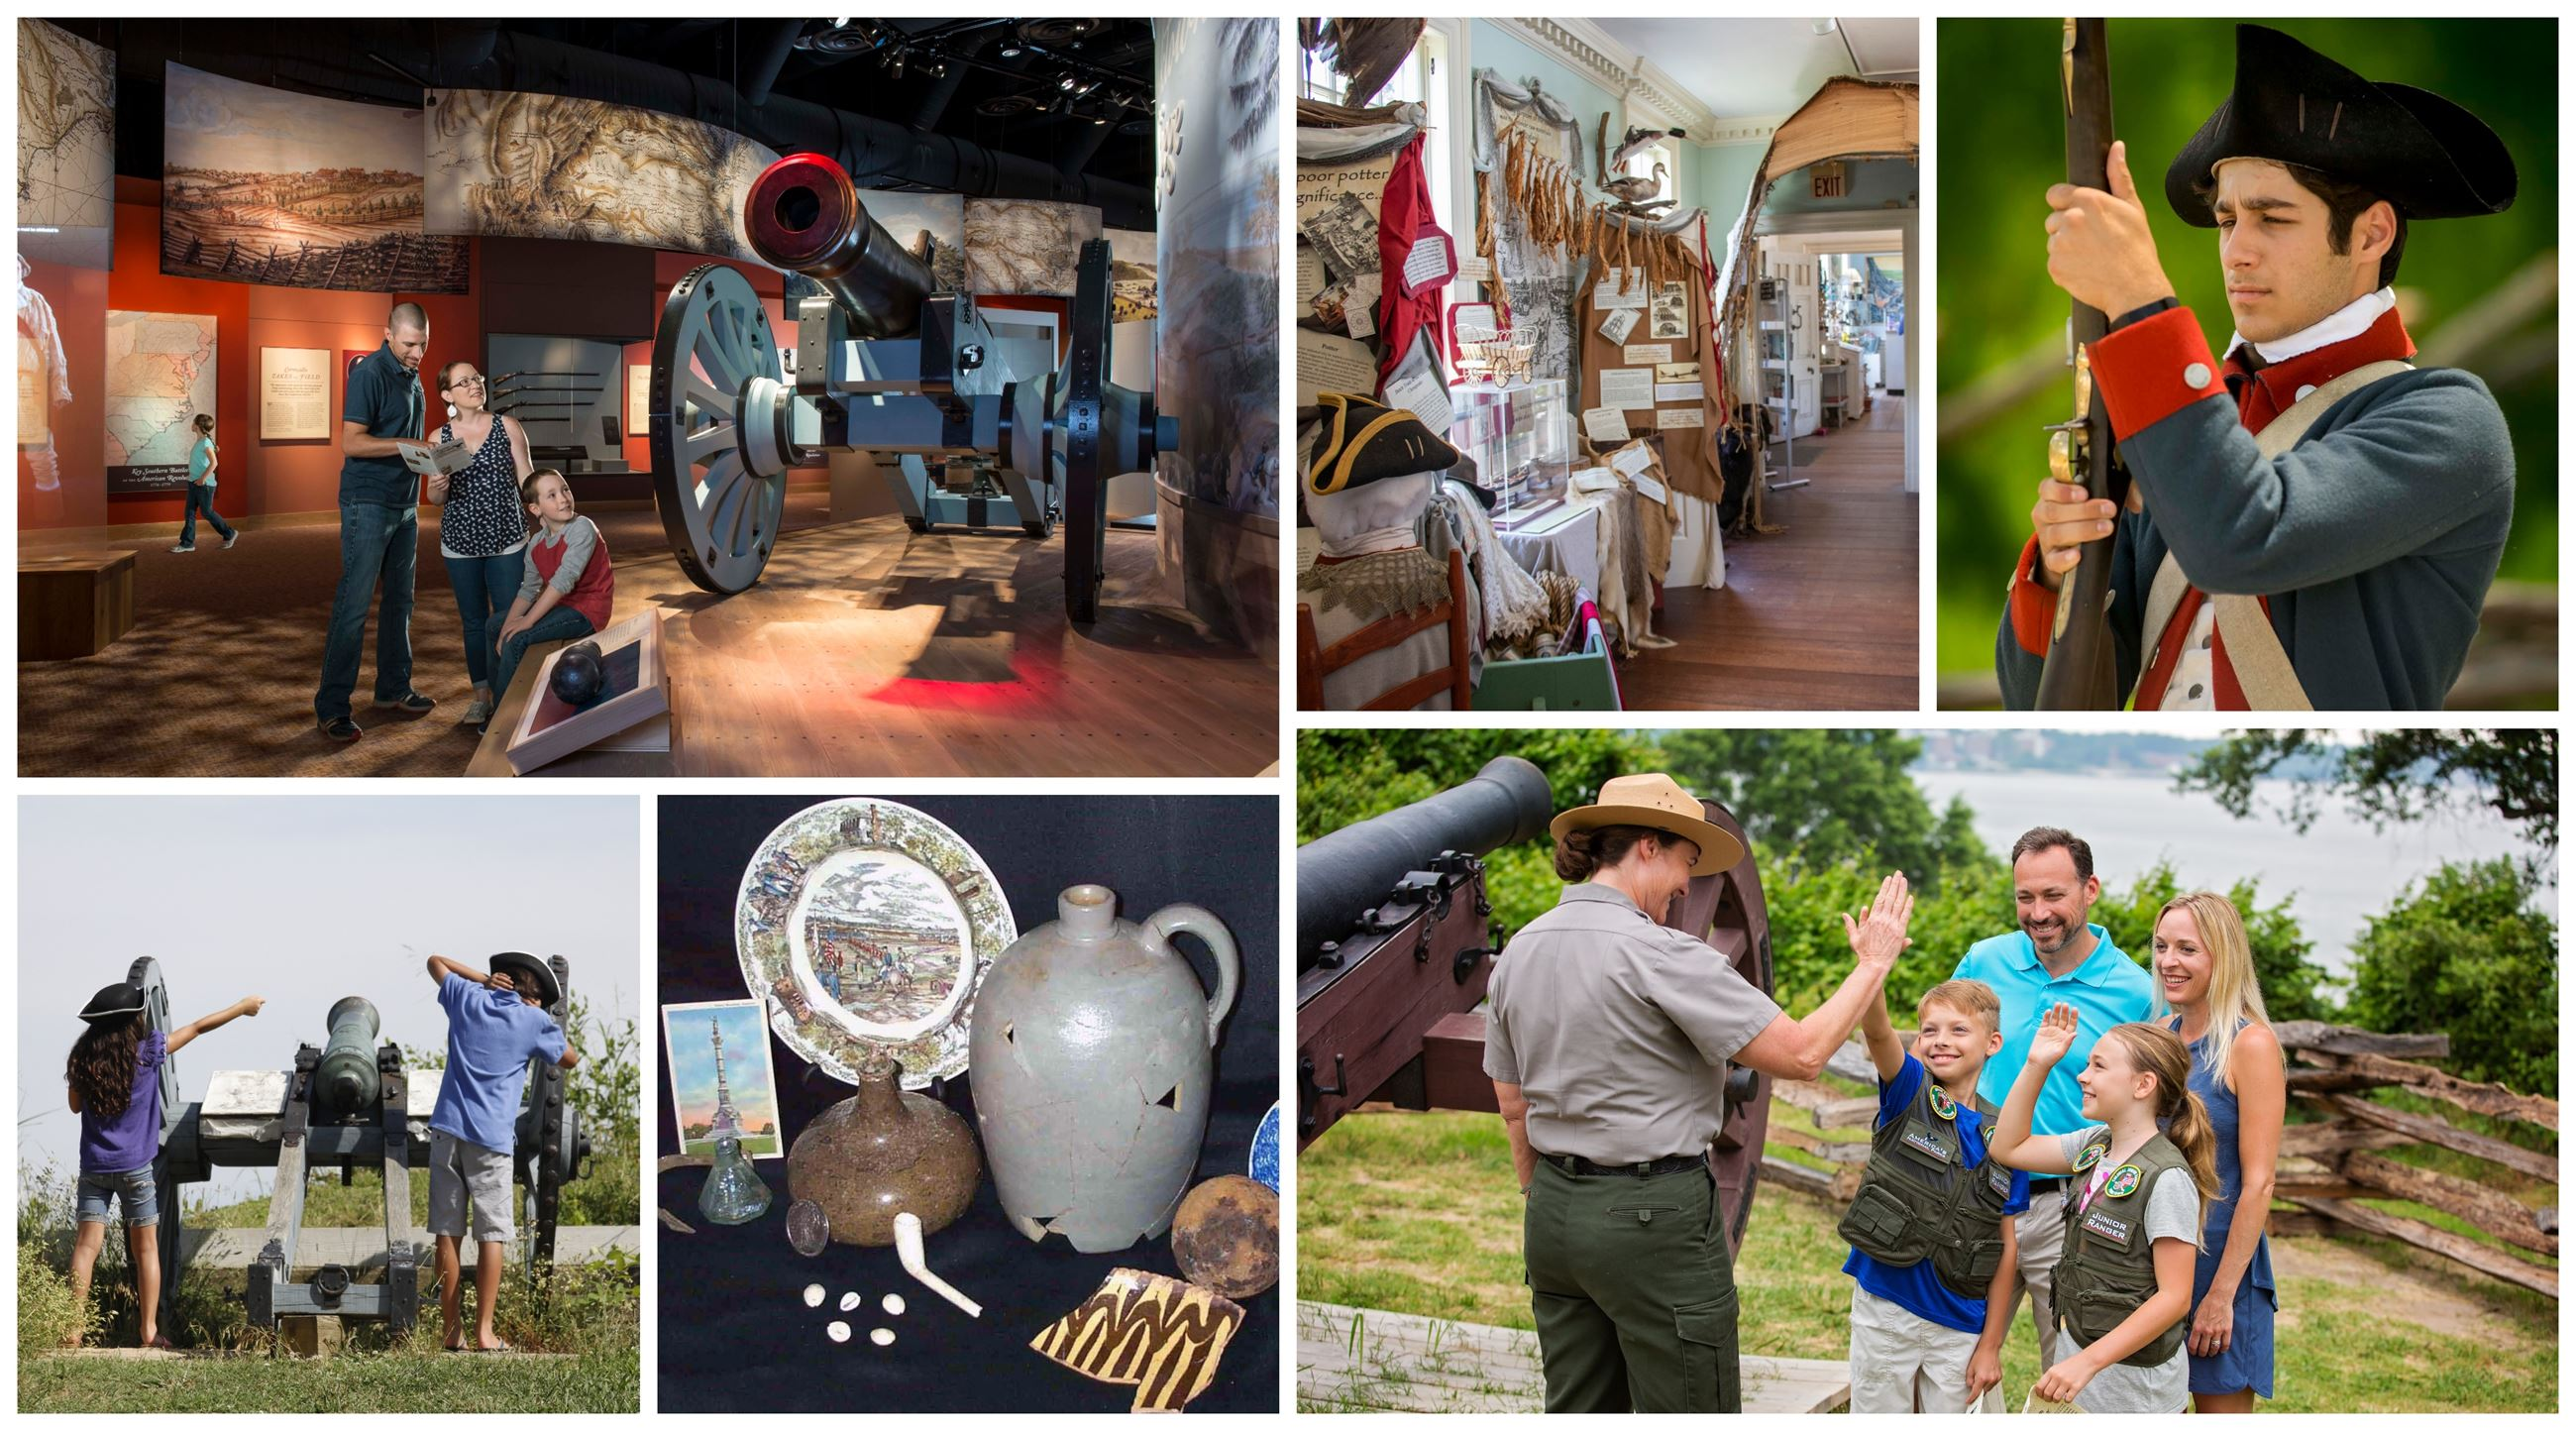 Historical Attractions and Museums in Yorktown